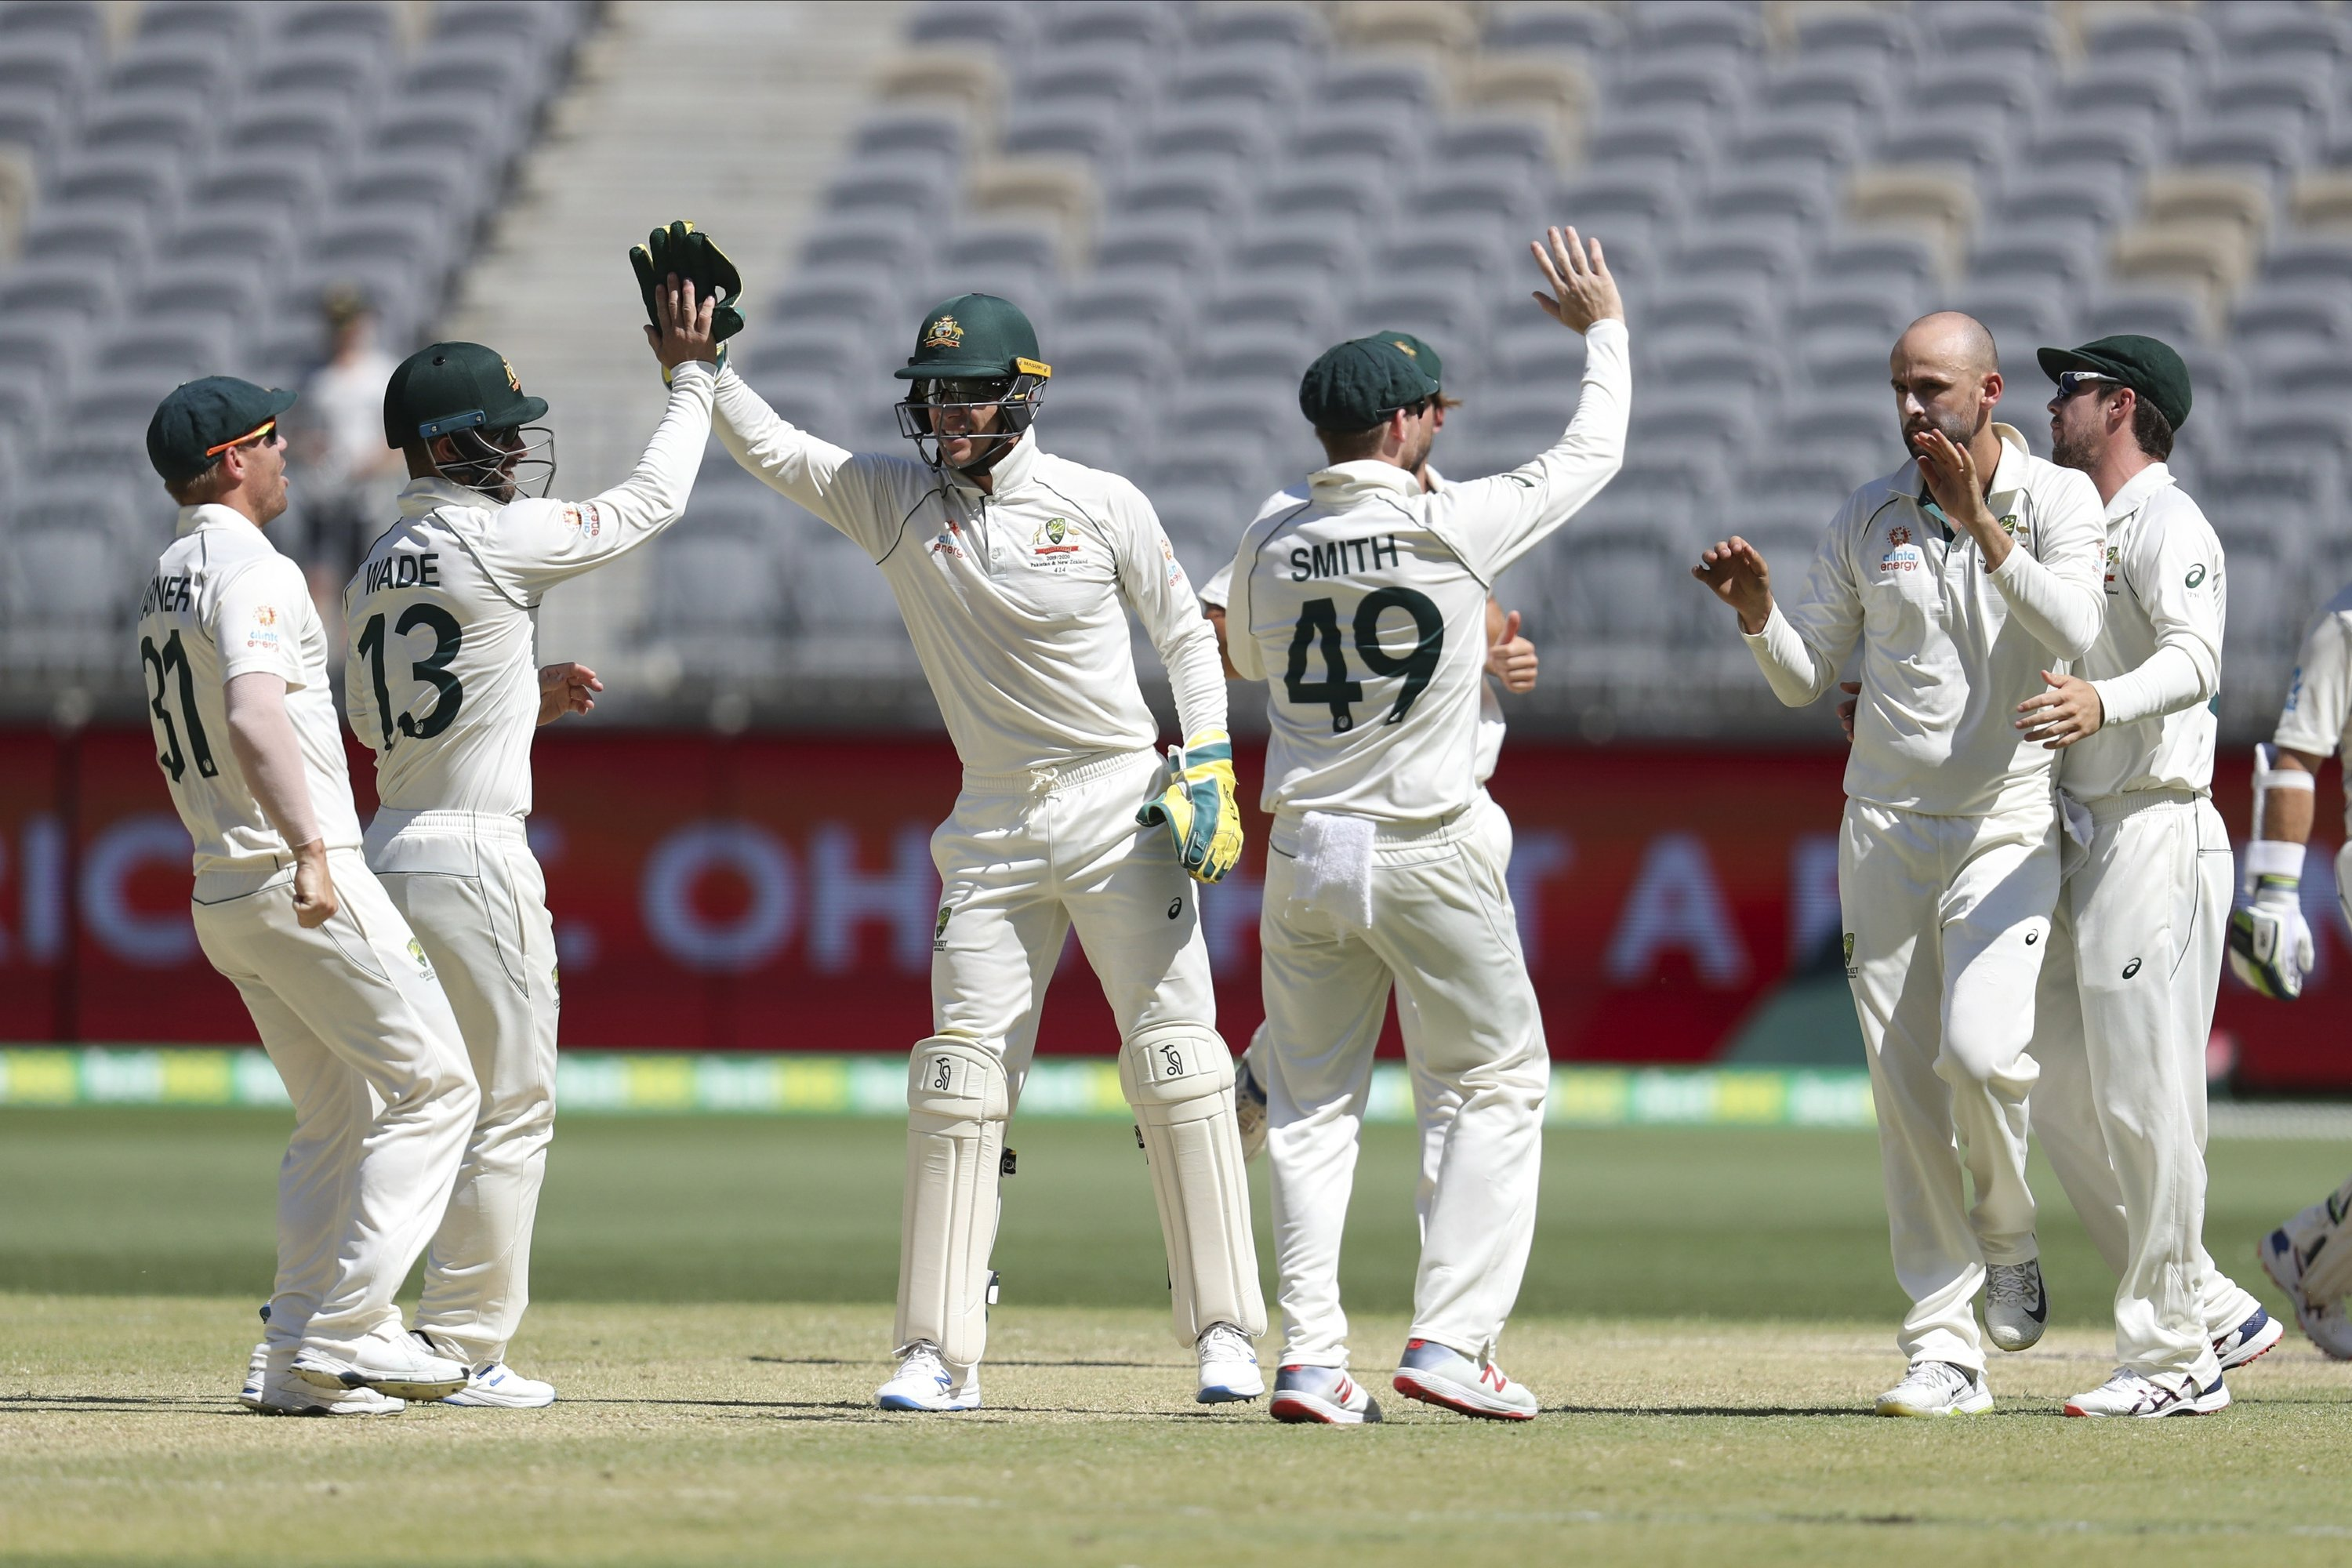 Australia hammers New Zealand by 296 runs to take a 1-0 lead